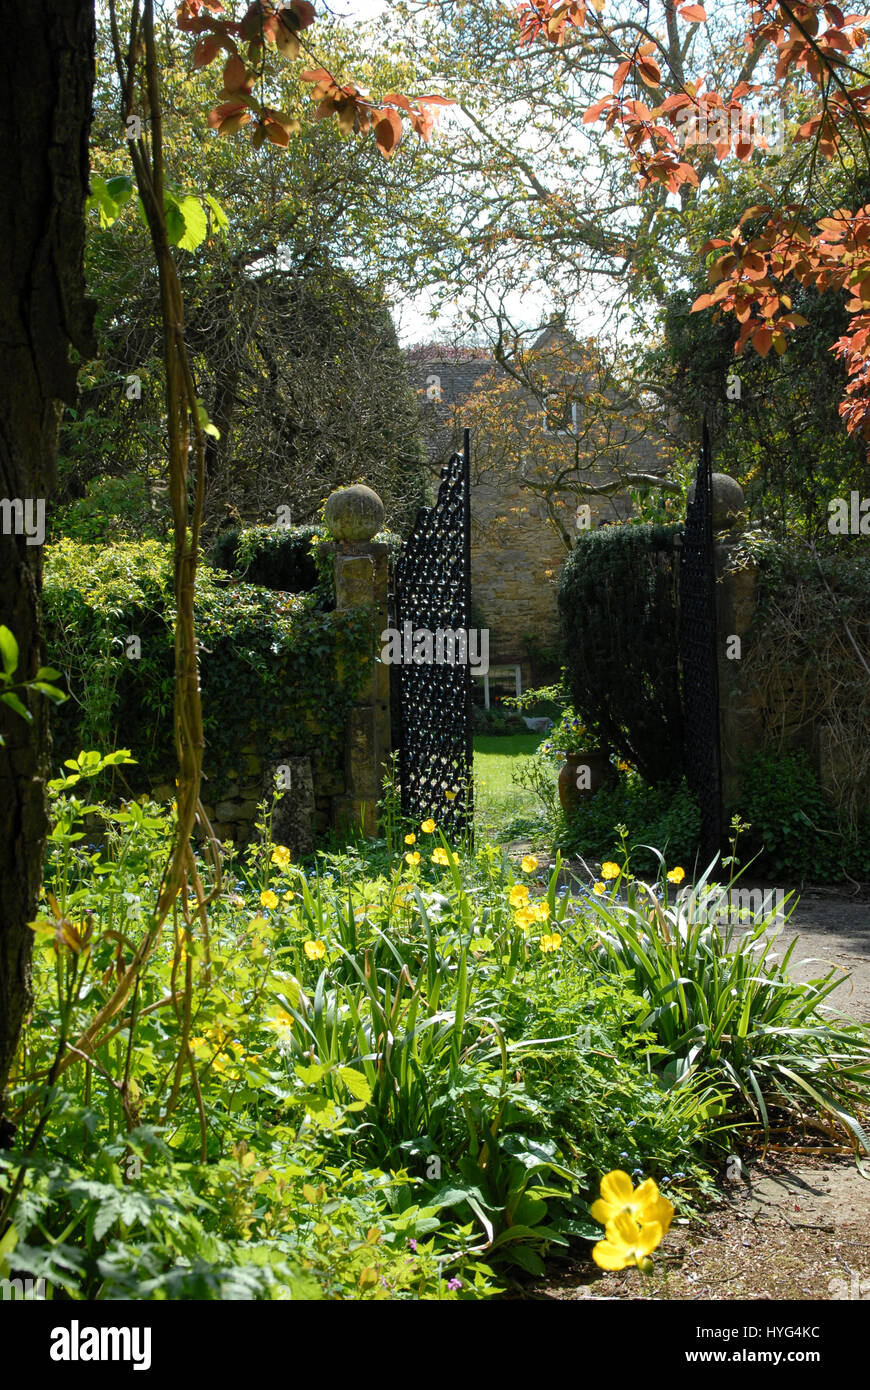 Scene in an English country garden with Cotswold stone walls and mixed planting - Stock Image